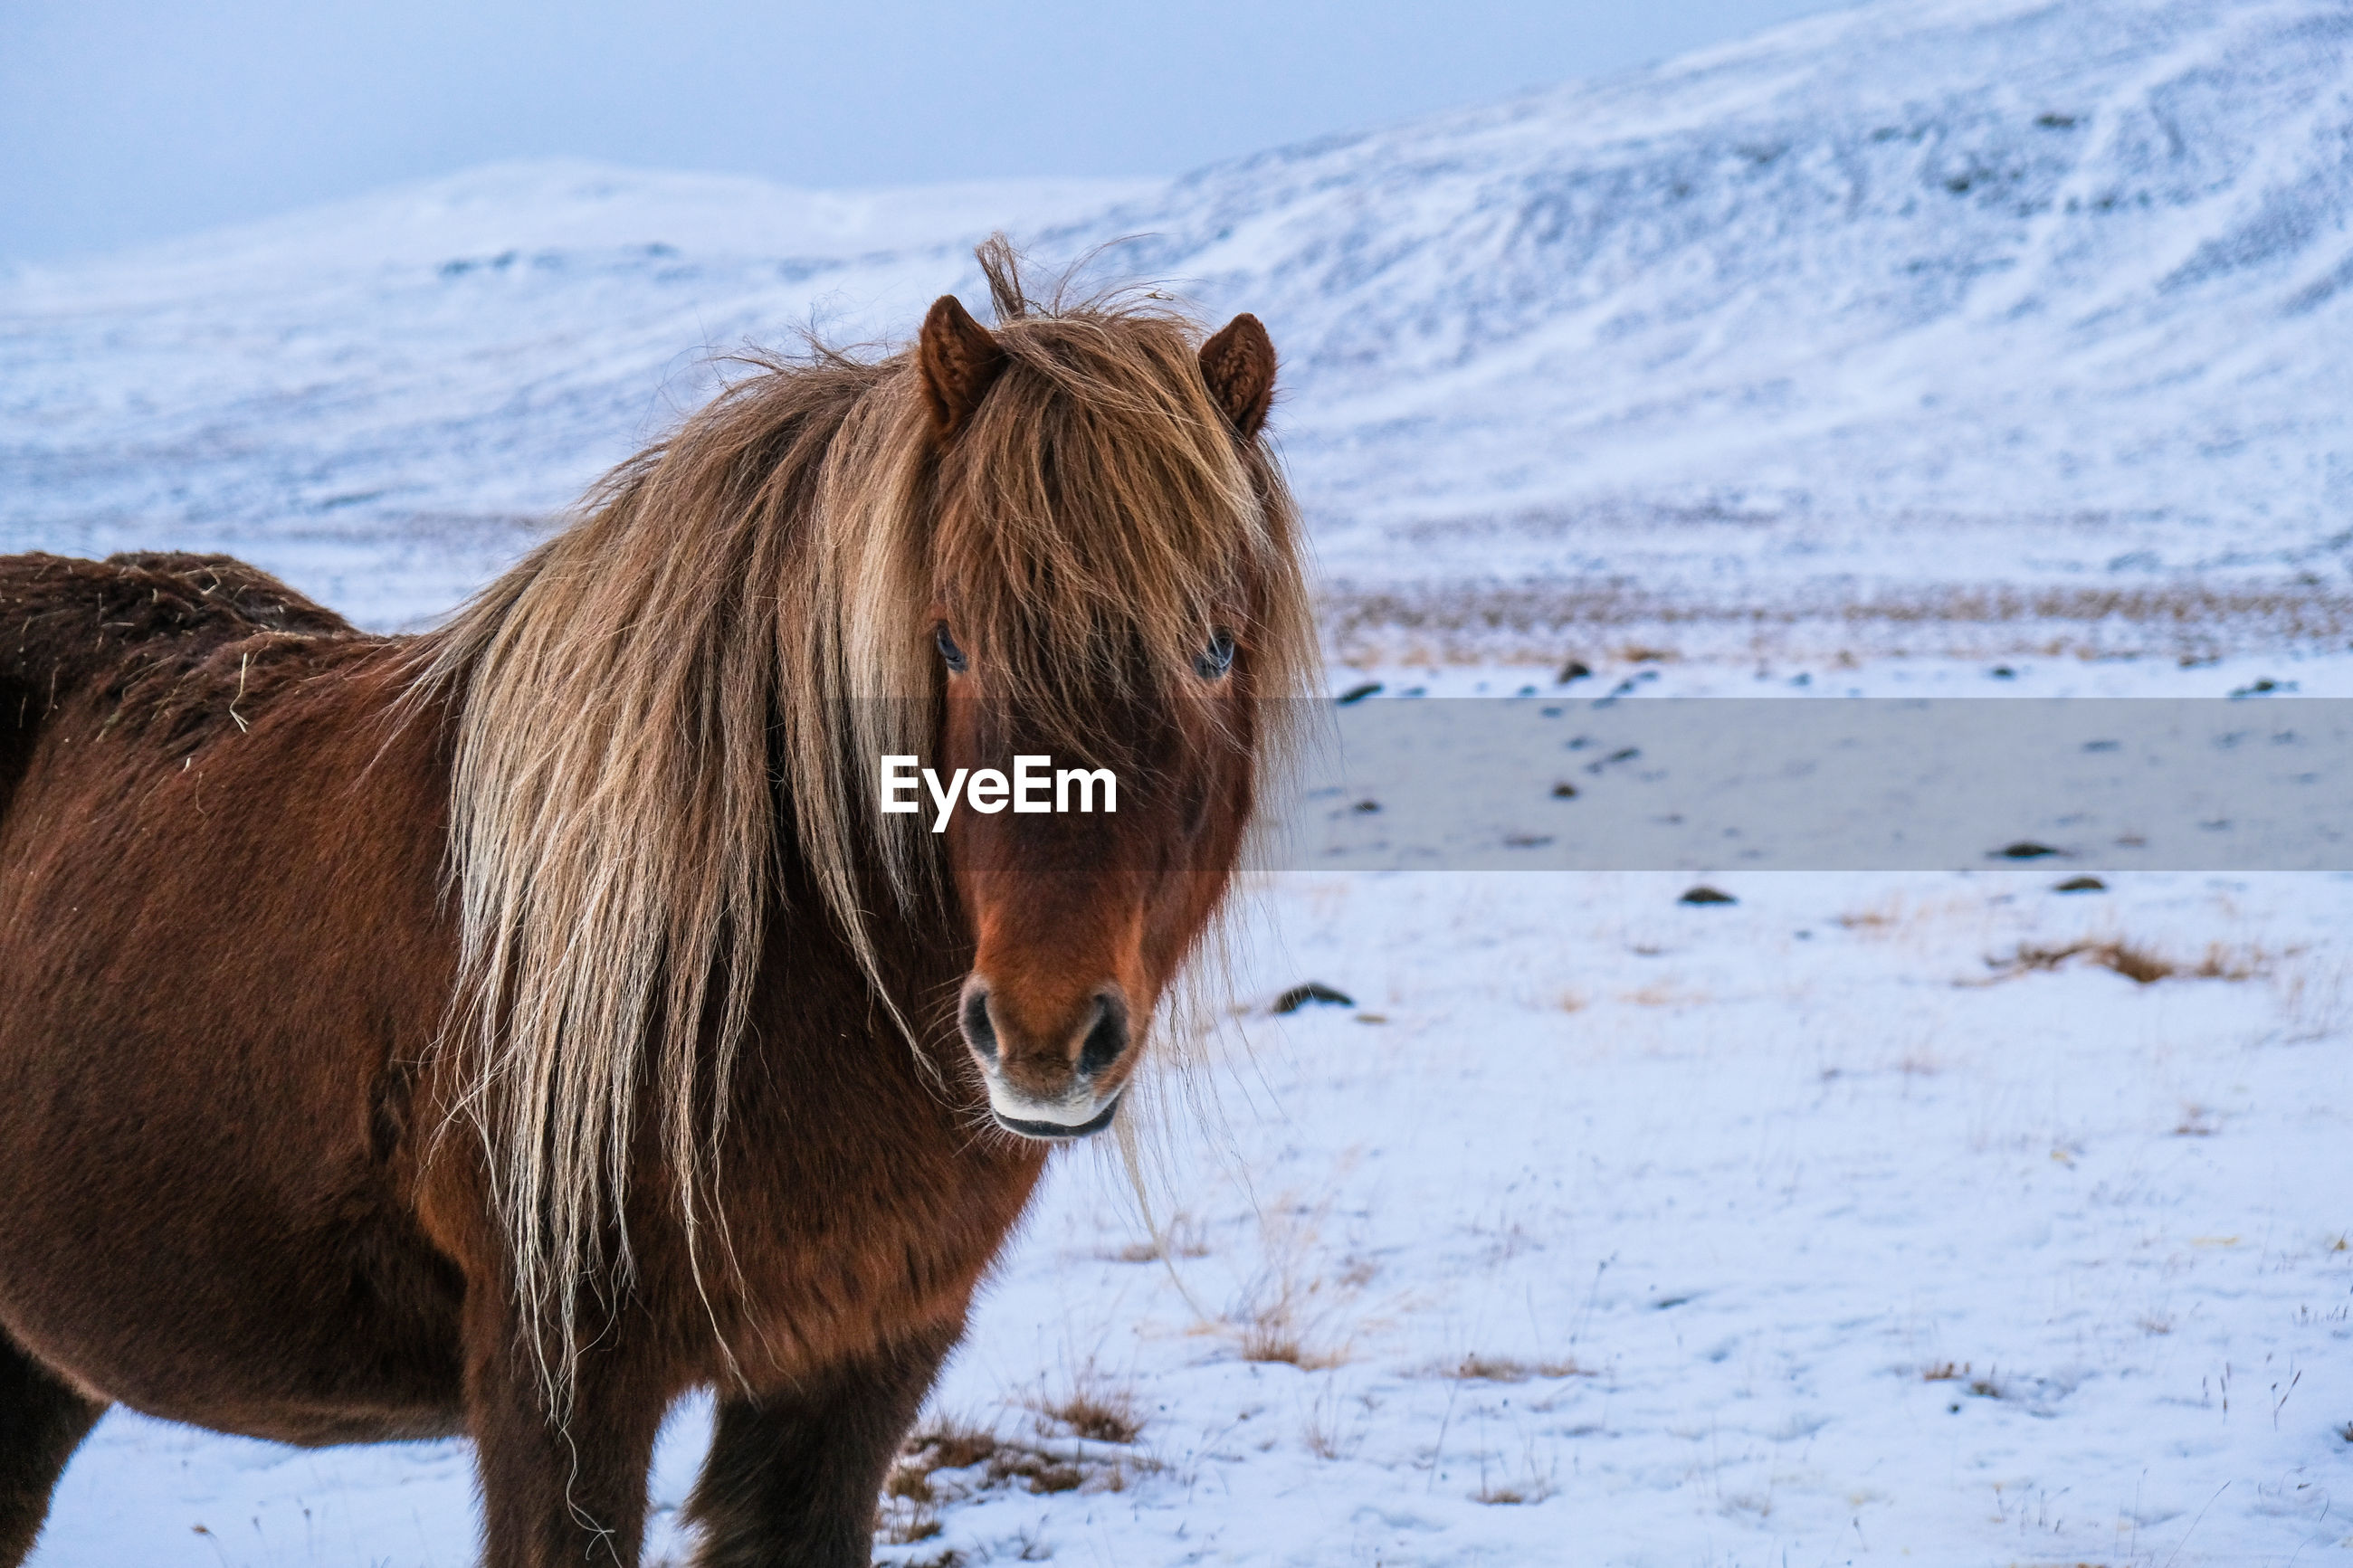 Icelandic horse standing on snow covered field